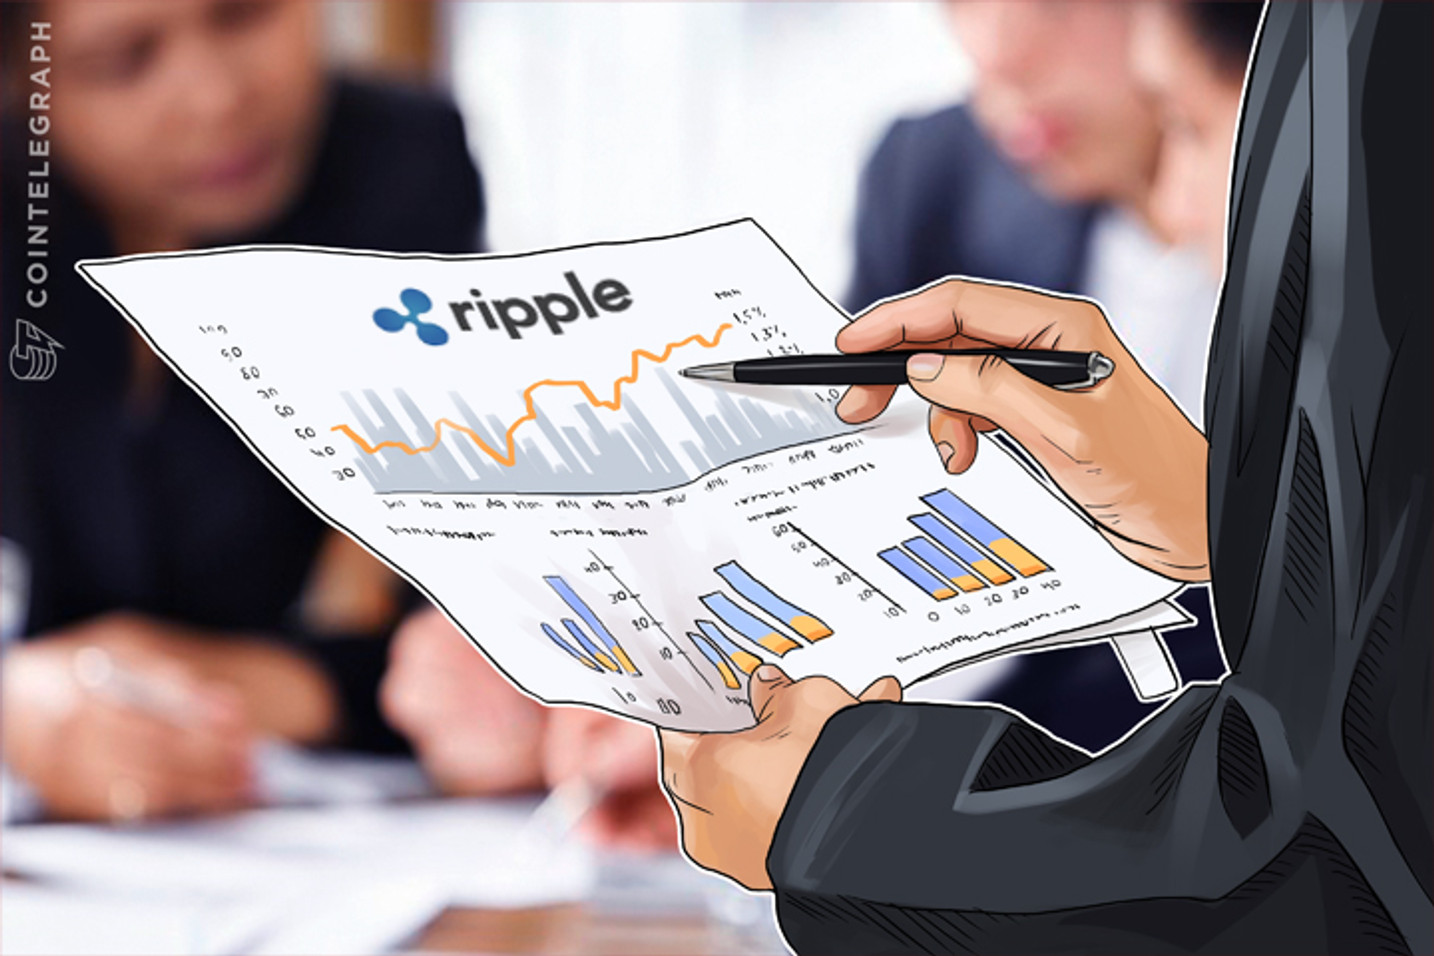 Ripple Price Analysis: July 22 - 30